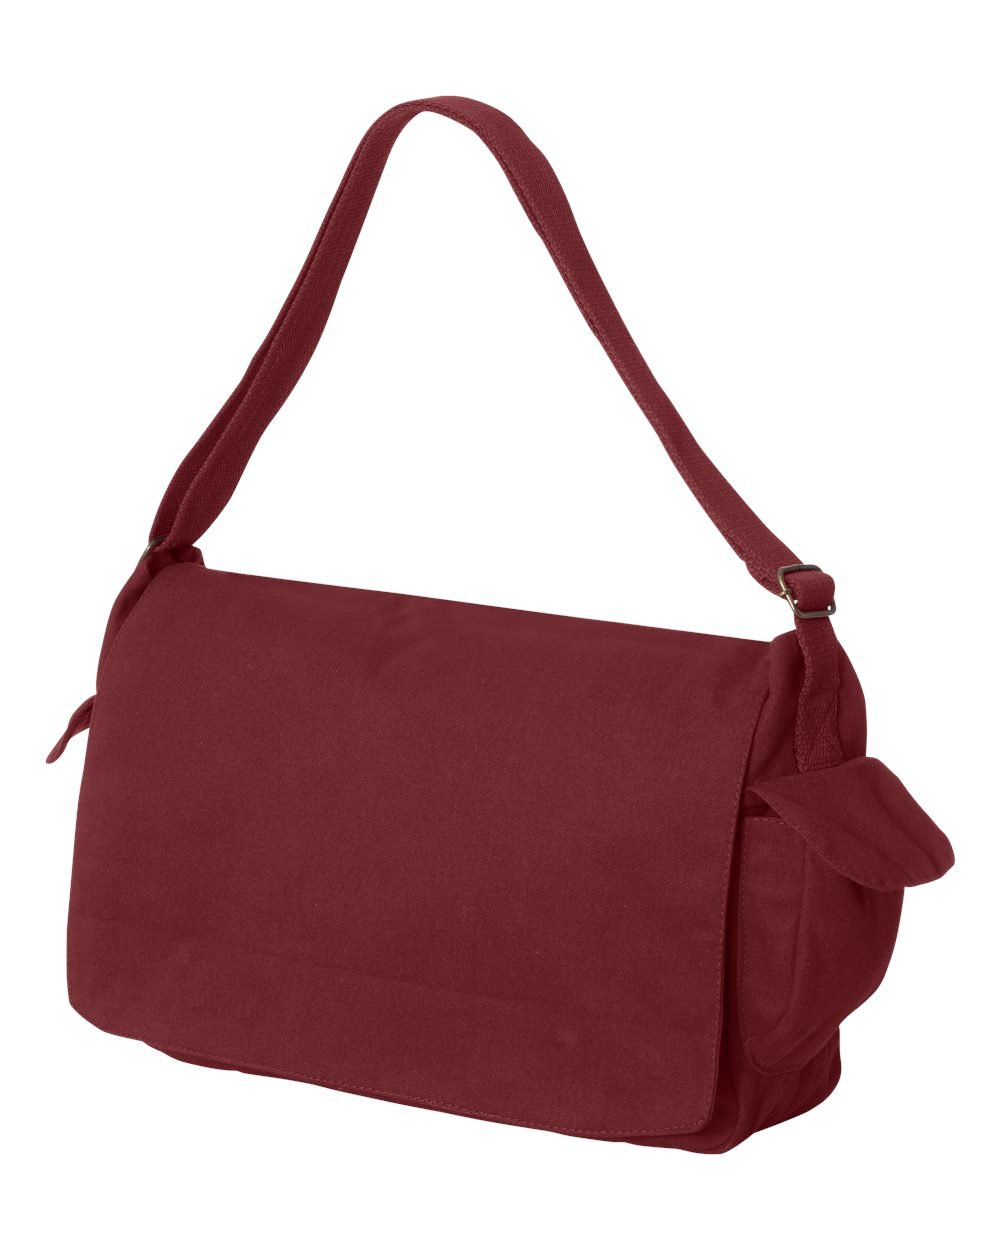 Tenacitee Born in 1956 - Aged Like a Fine Wine Maroon Brushed Canvas Messenger Bag by Tenacitee (Image #2)